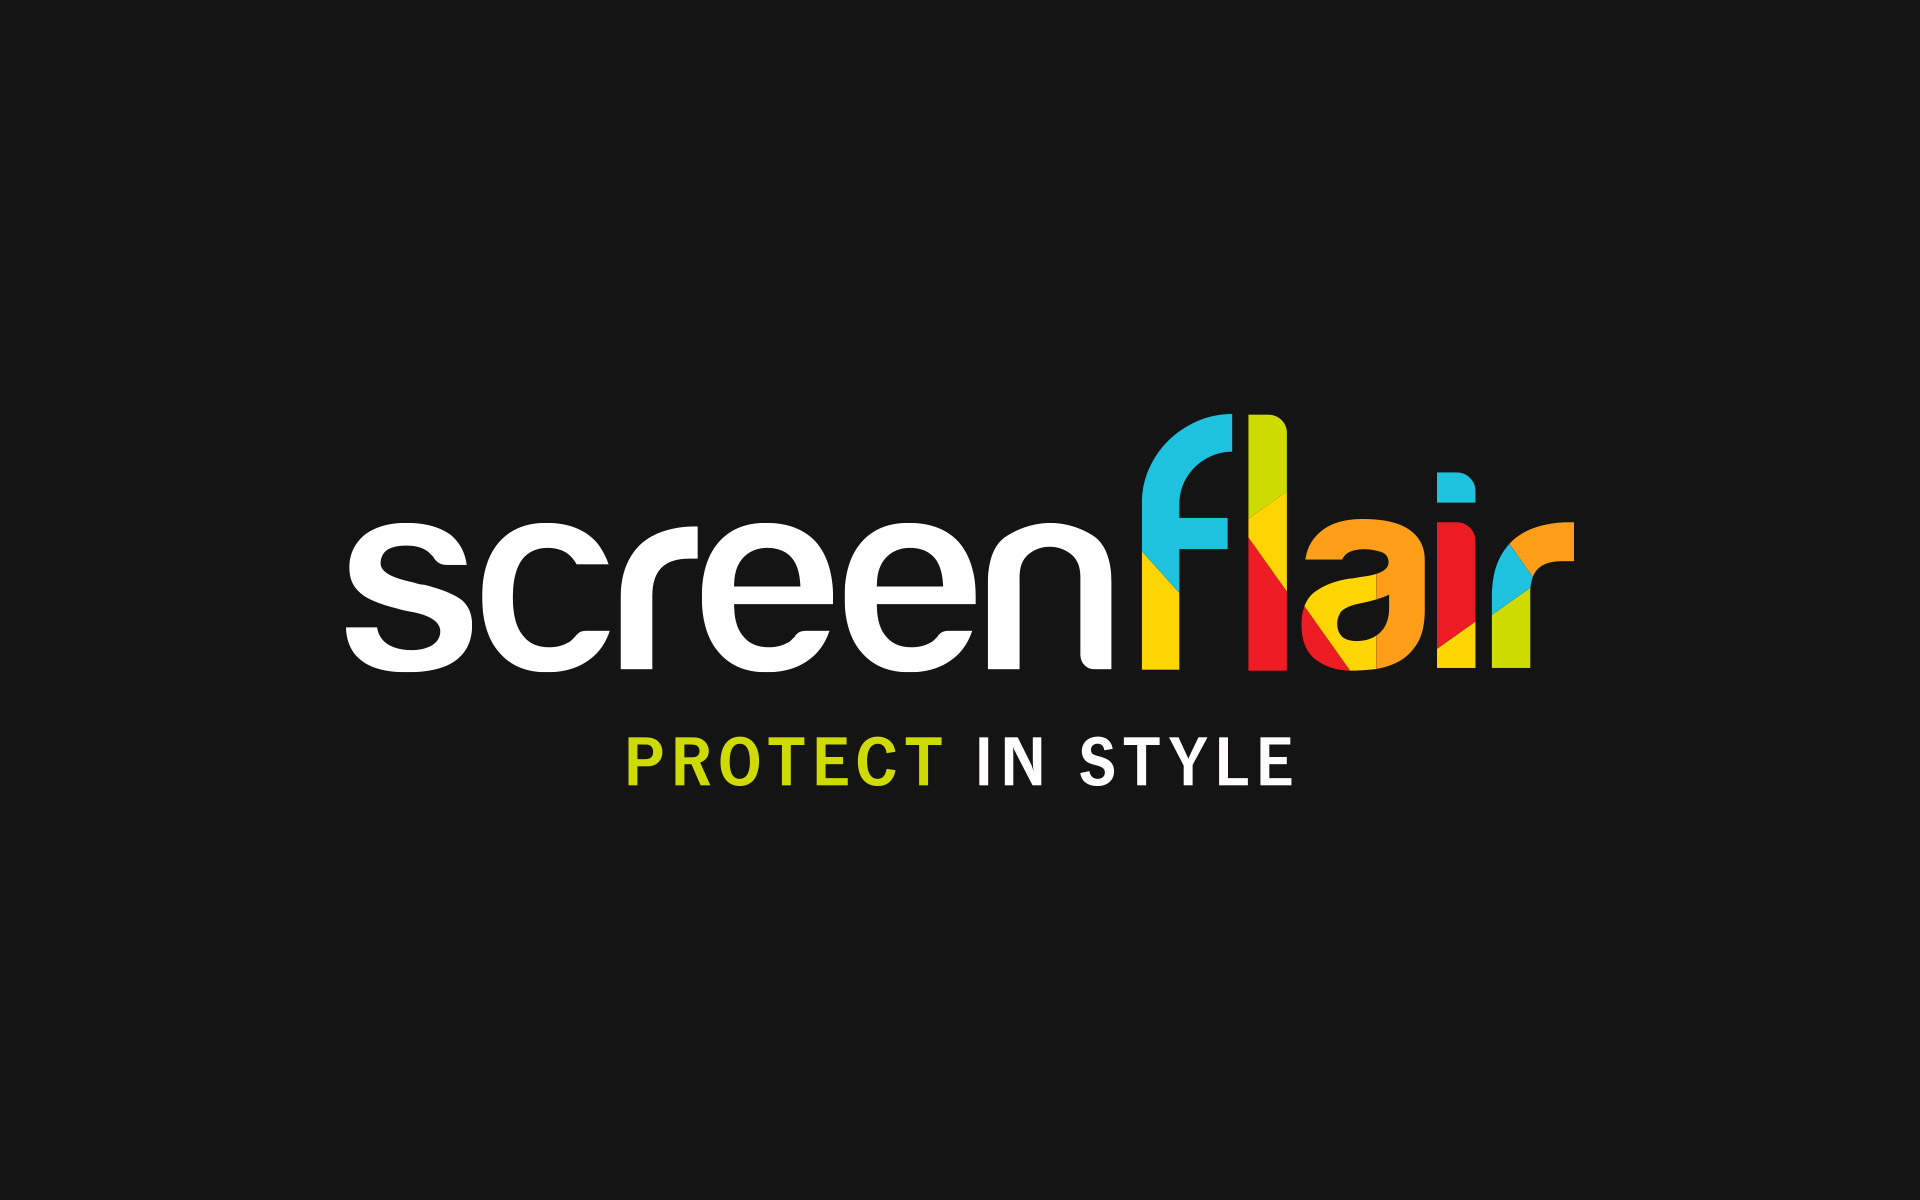 Screenflair on desktop and mobil devices